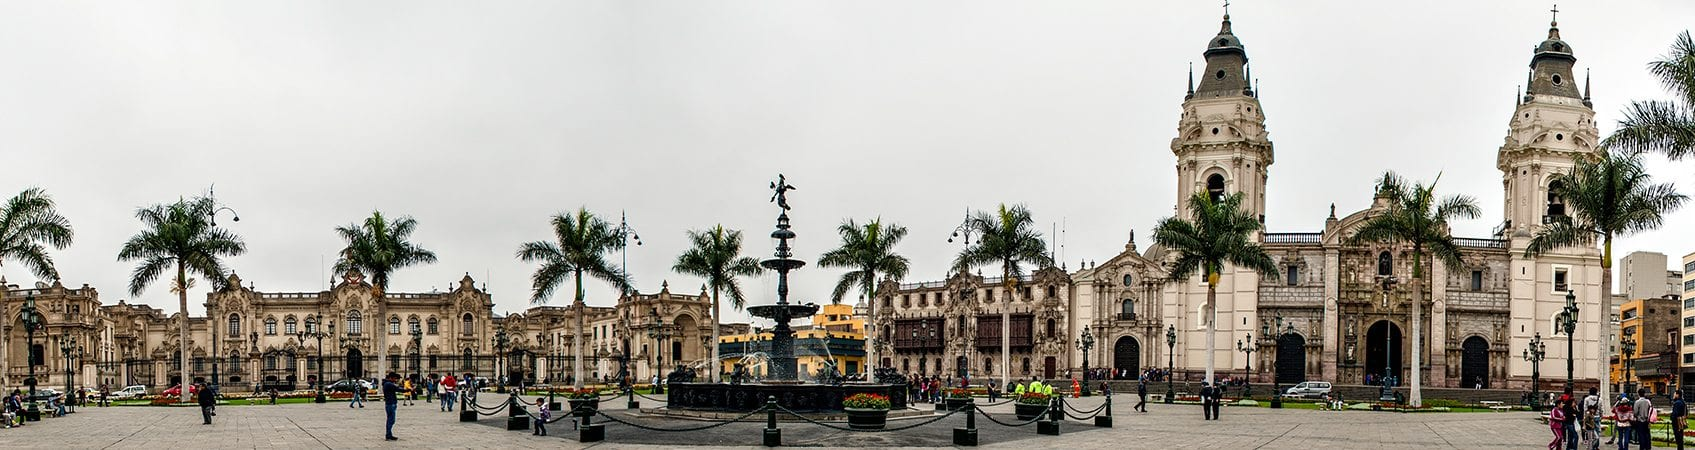 plaza-mayor-lima-en